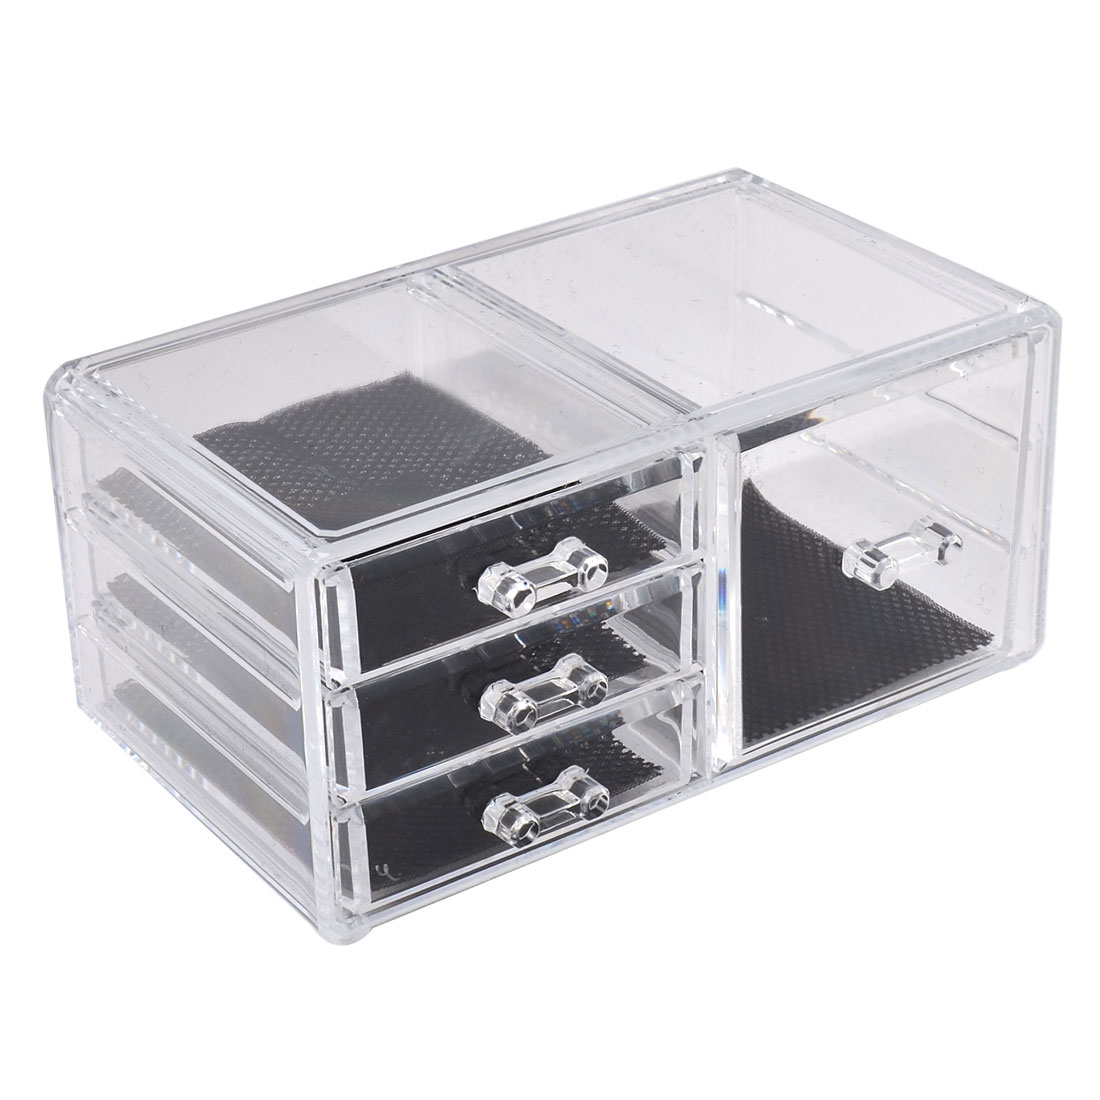 Acrylic Cosmetics Organizer Jewelry Storage Drawer Case Display Box